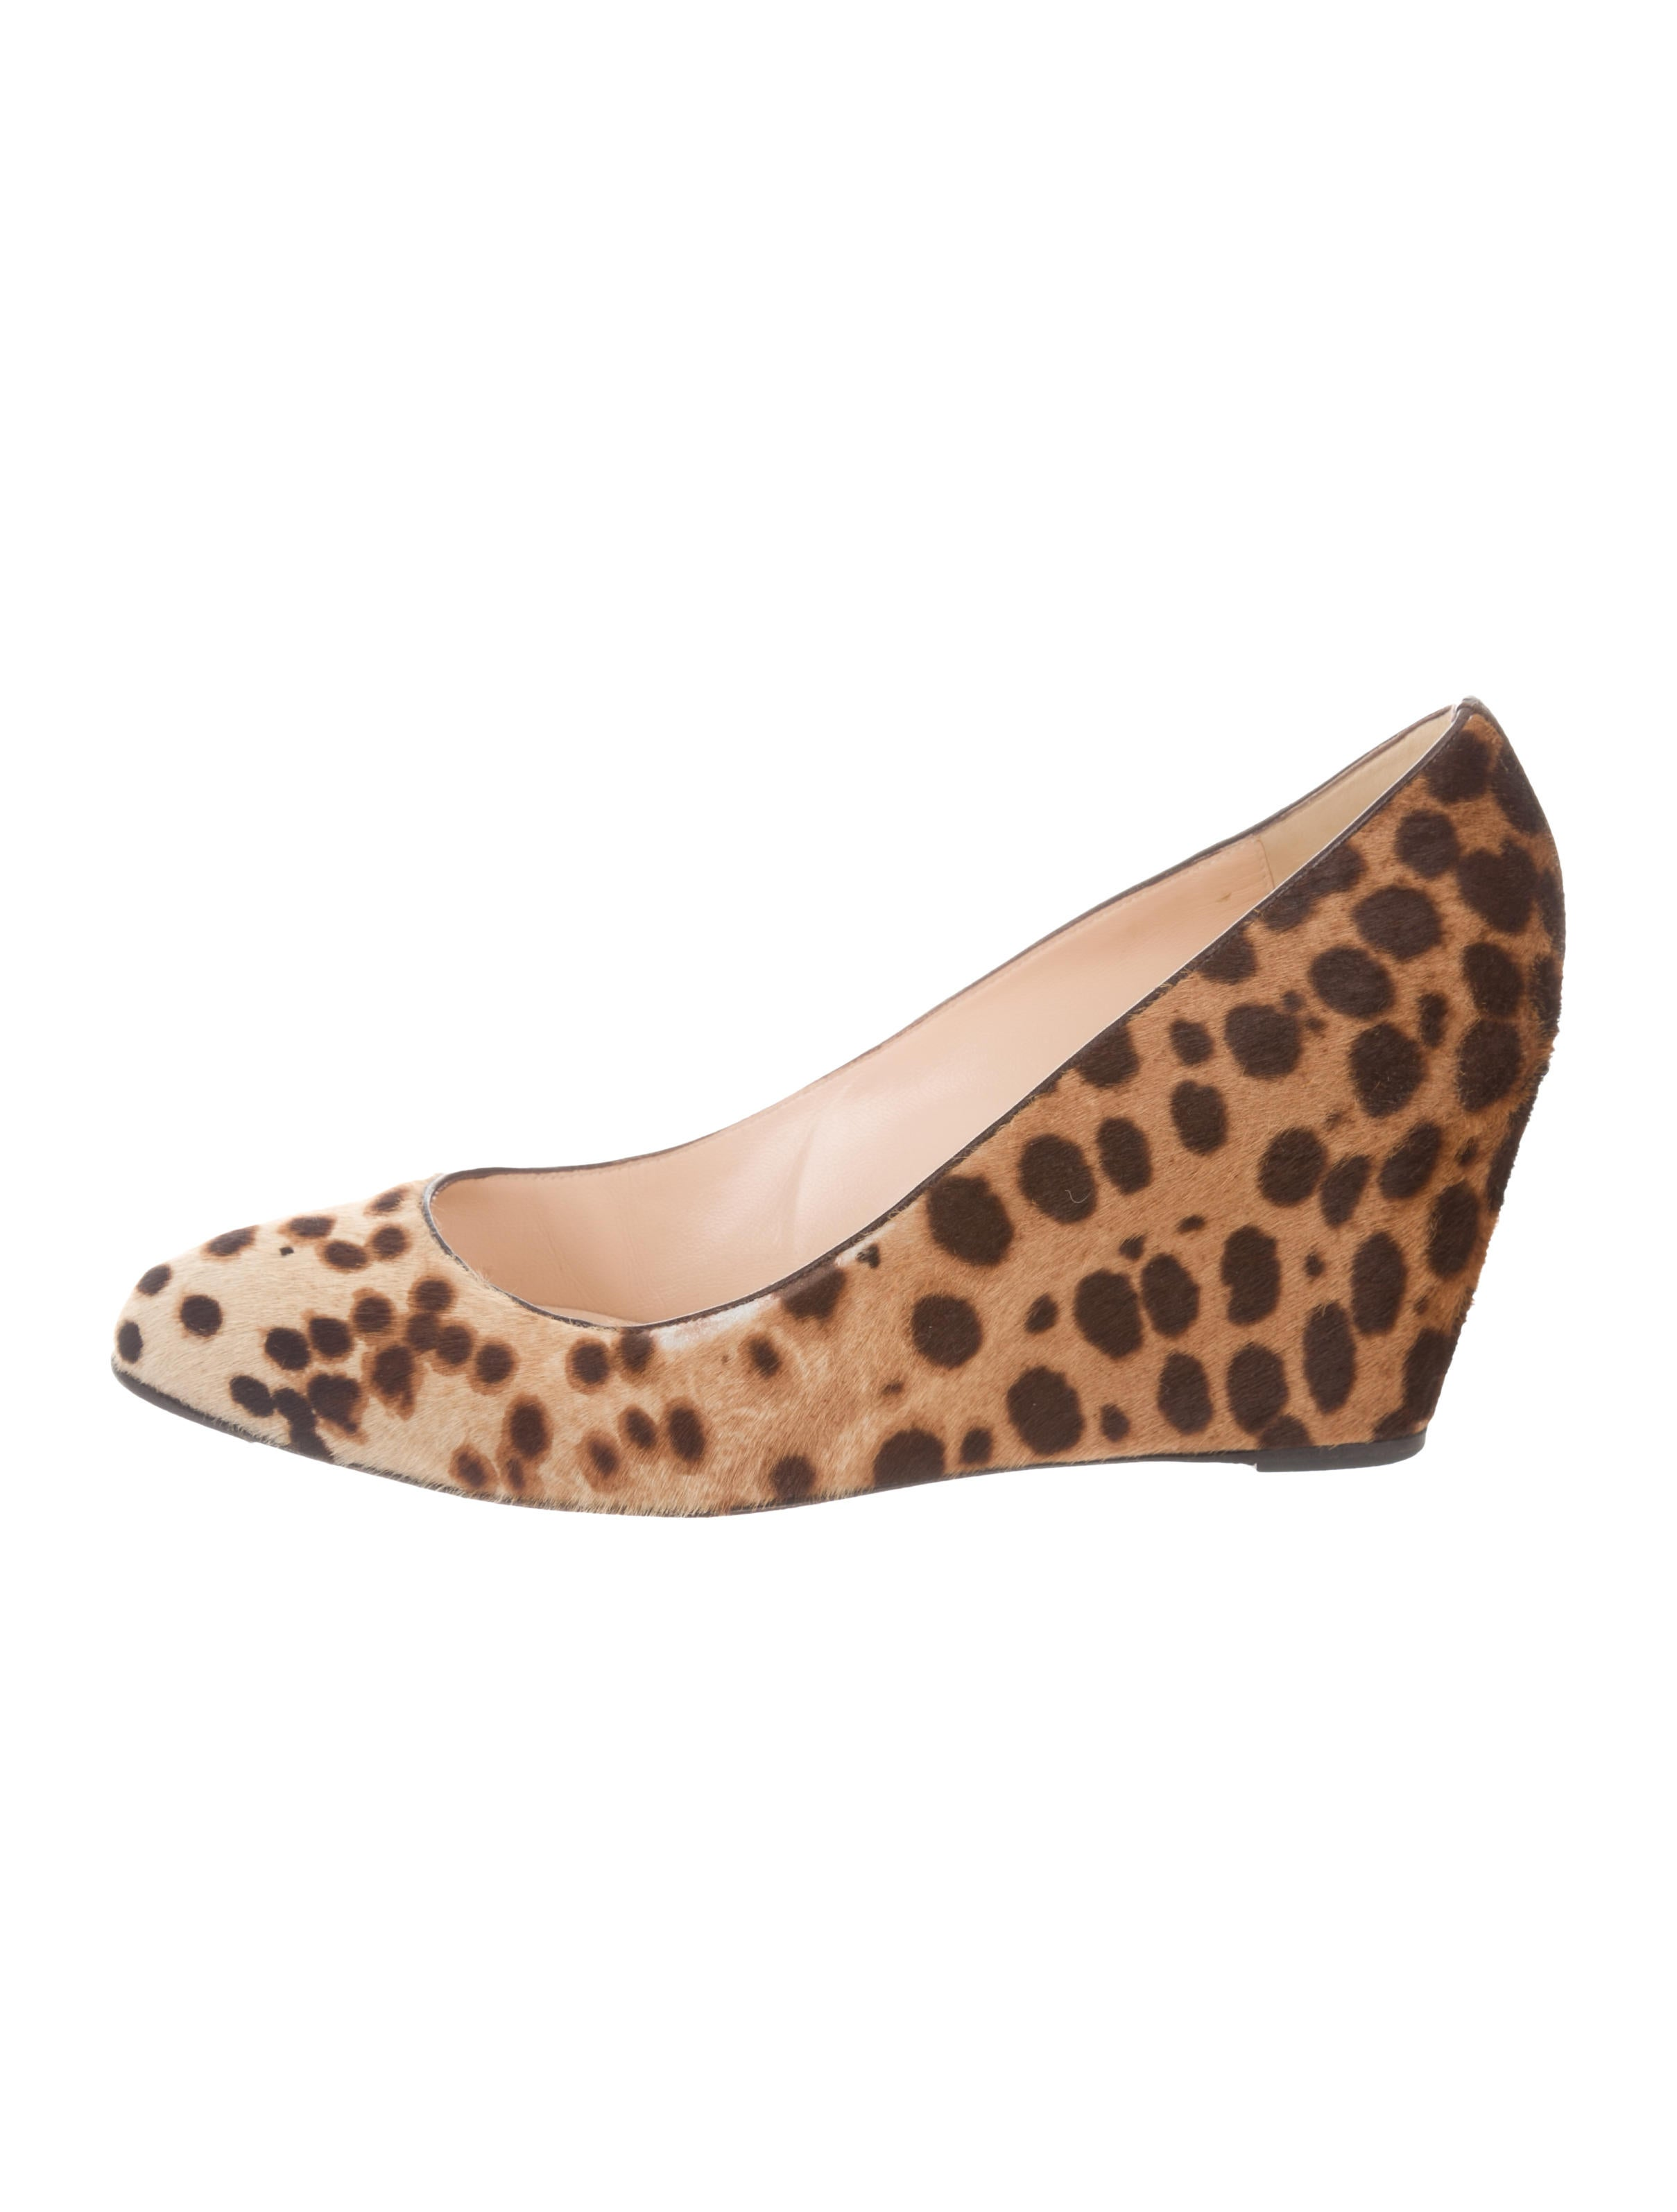 new styles cheap price Christian Louboutin Ponyhair Round-Toe Wedges discount reliable deals cheap online discount store best place cheap price 60i1Q3